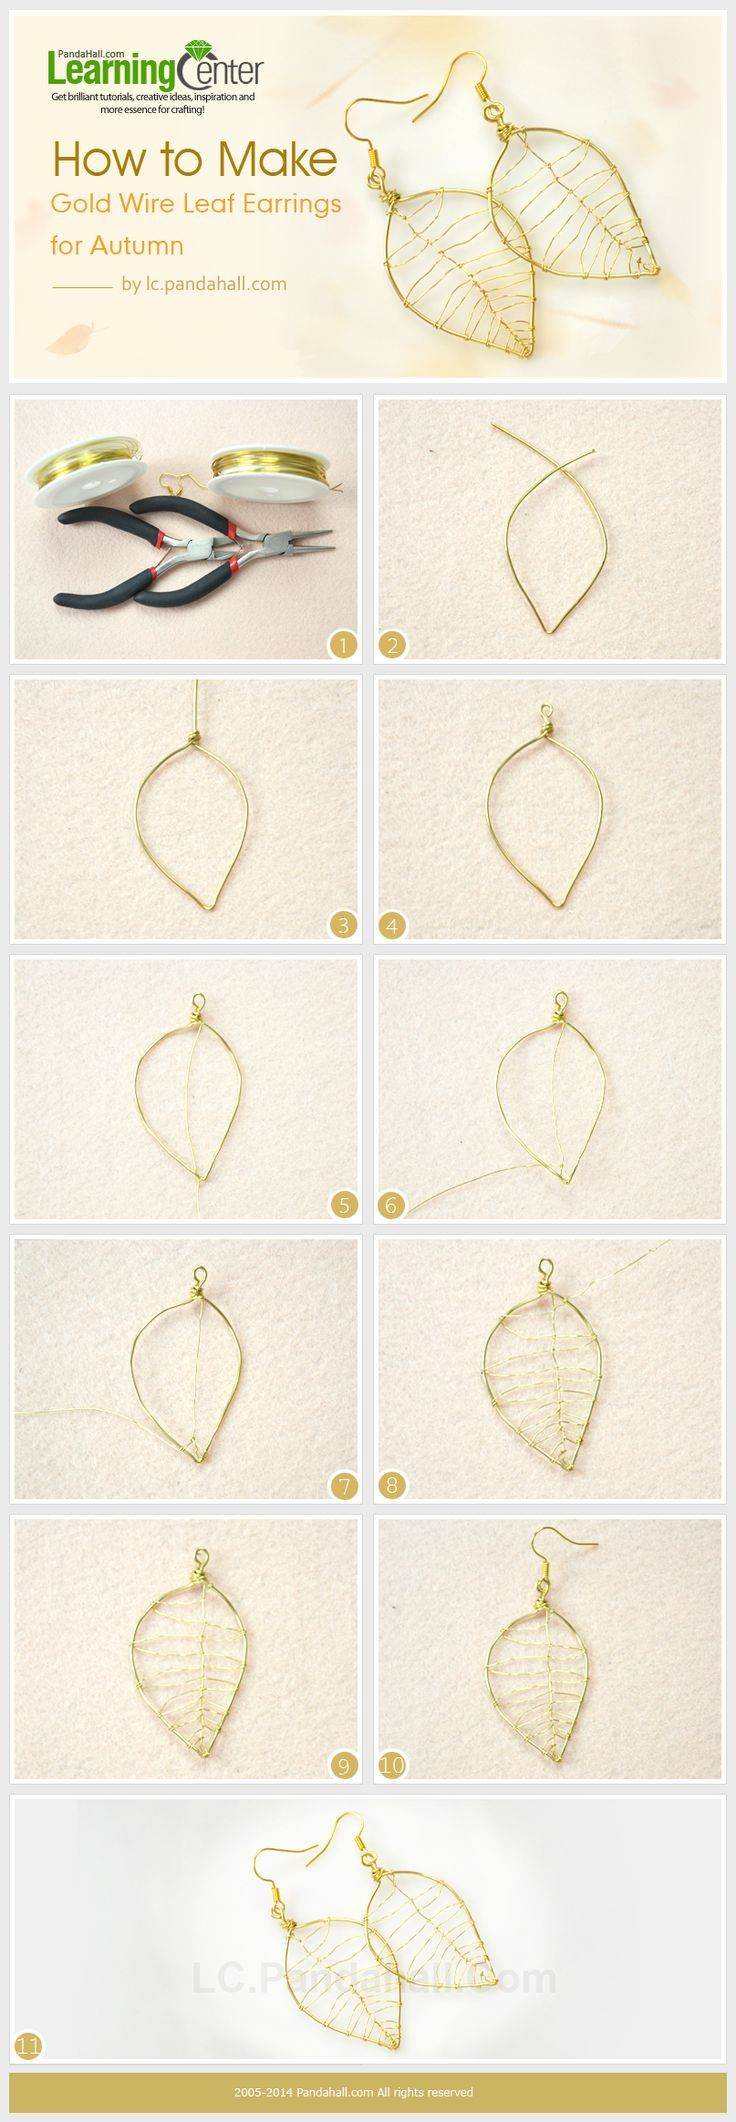 How to Make Gold Wire Leaf Earrings for Autumn #Wire #Jewelry #Tutorials...